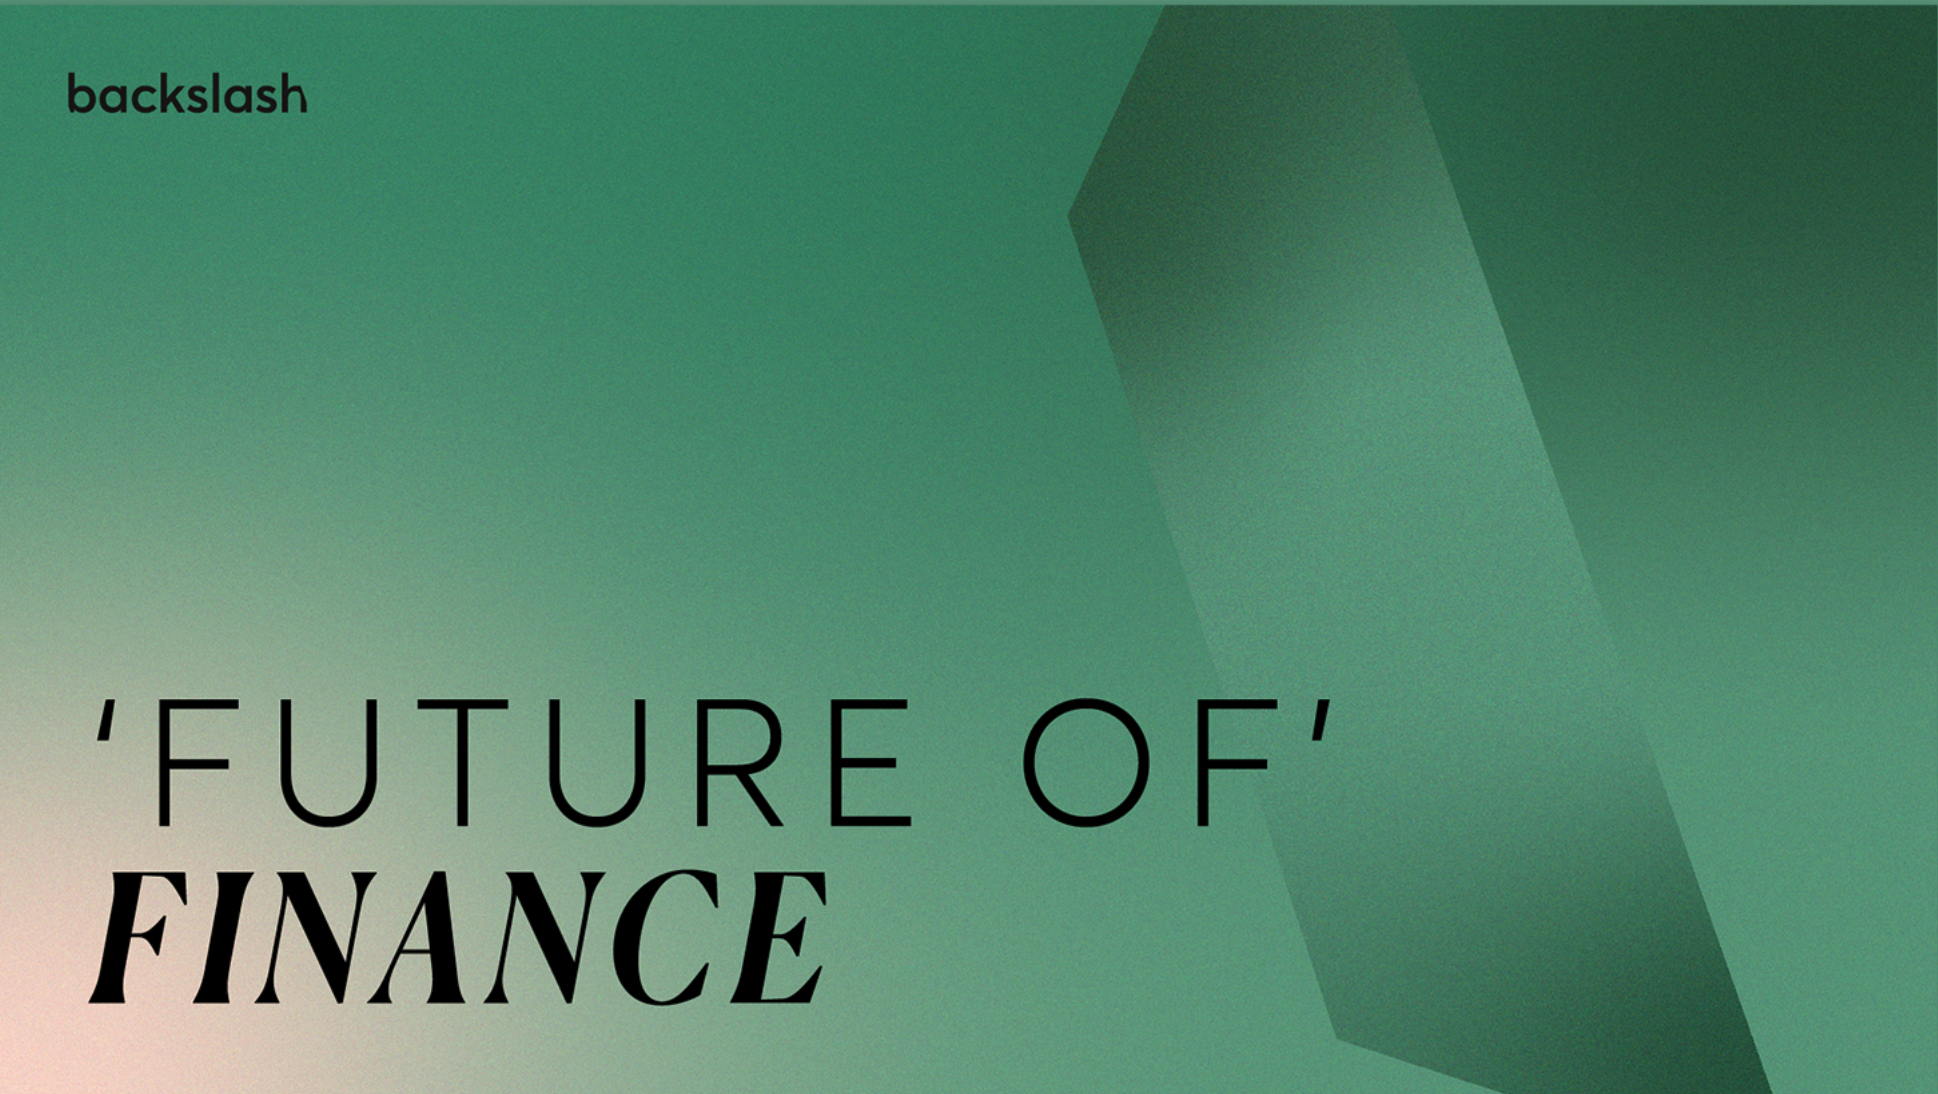 What's Next for Finance?